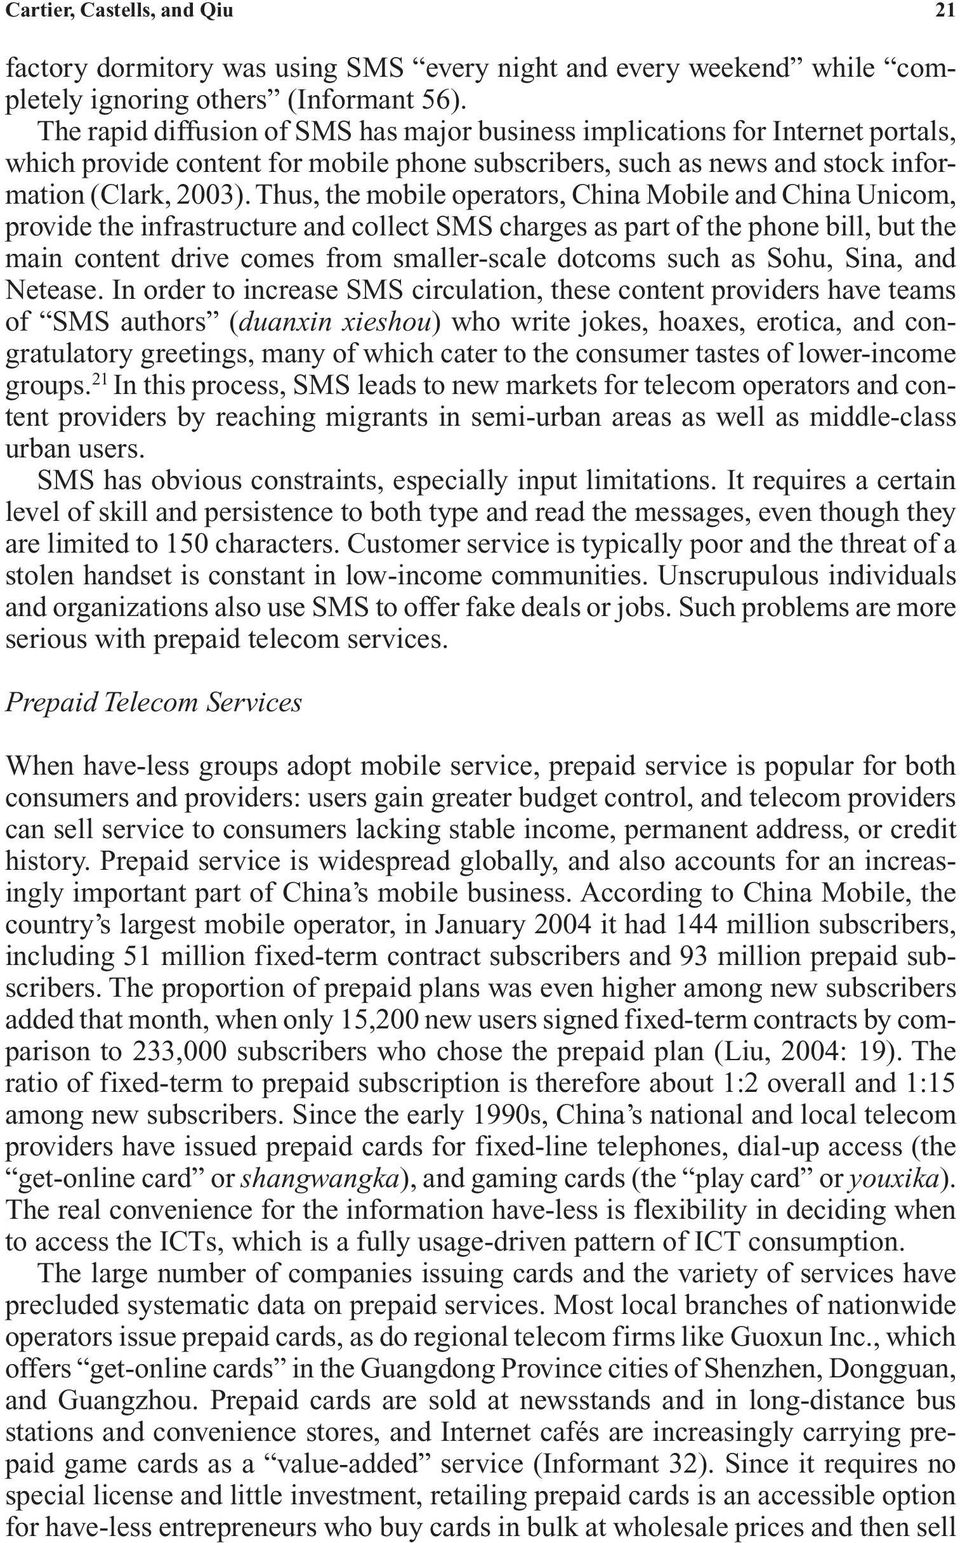 Thus, the mobile operators, China Mobile and China Unicom, provide the infrastructure and collect SMS charges as part of the phone bill, but the main content drive comes from smaller-scale dotcoms